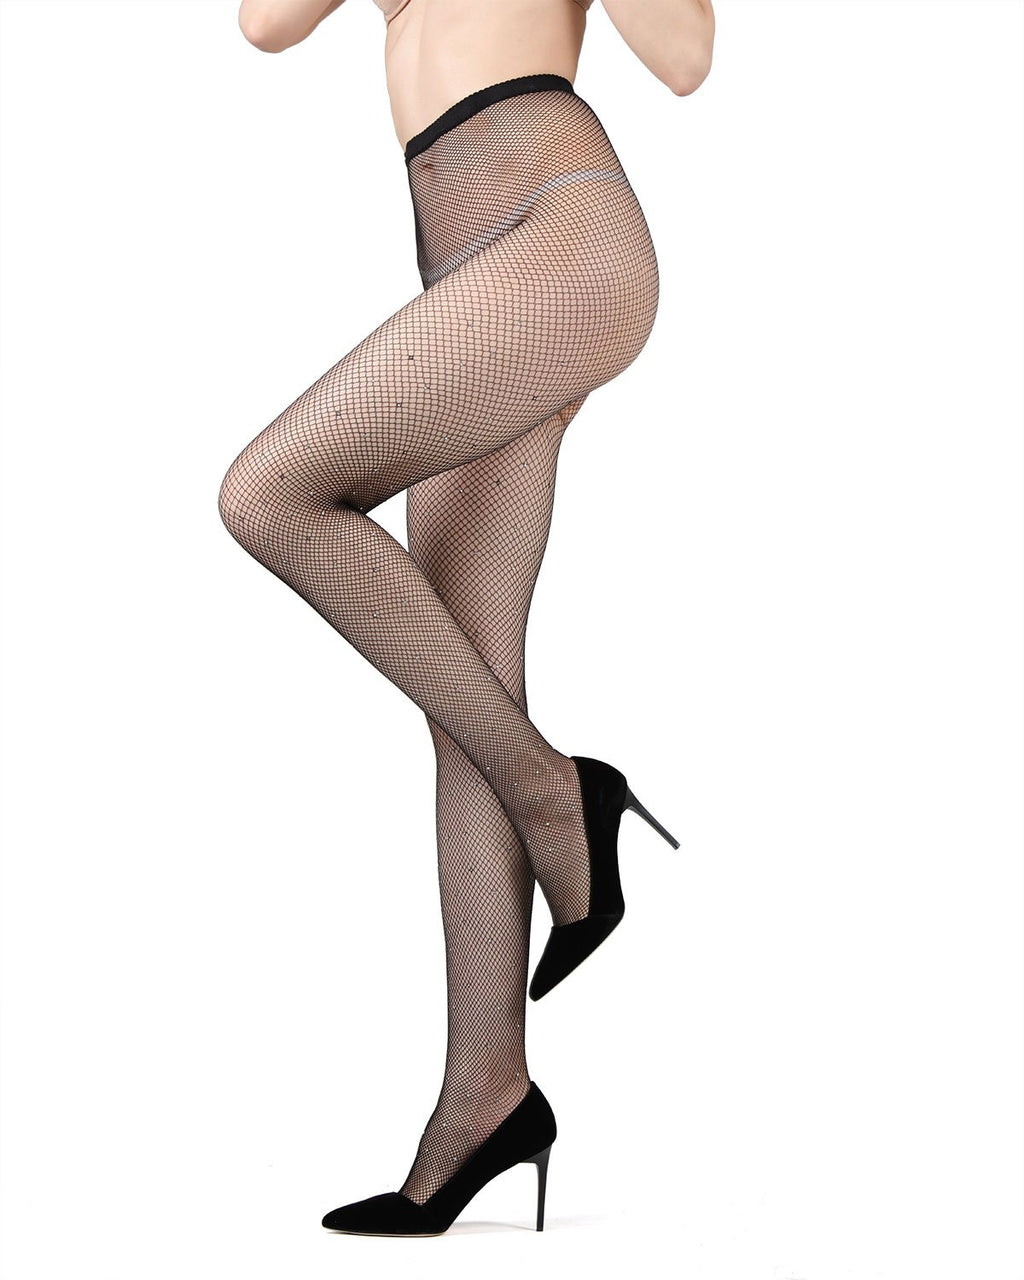 MeMoi | Rhinestone Mini-Net Fishnet Tights | Women's Tights